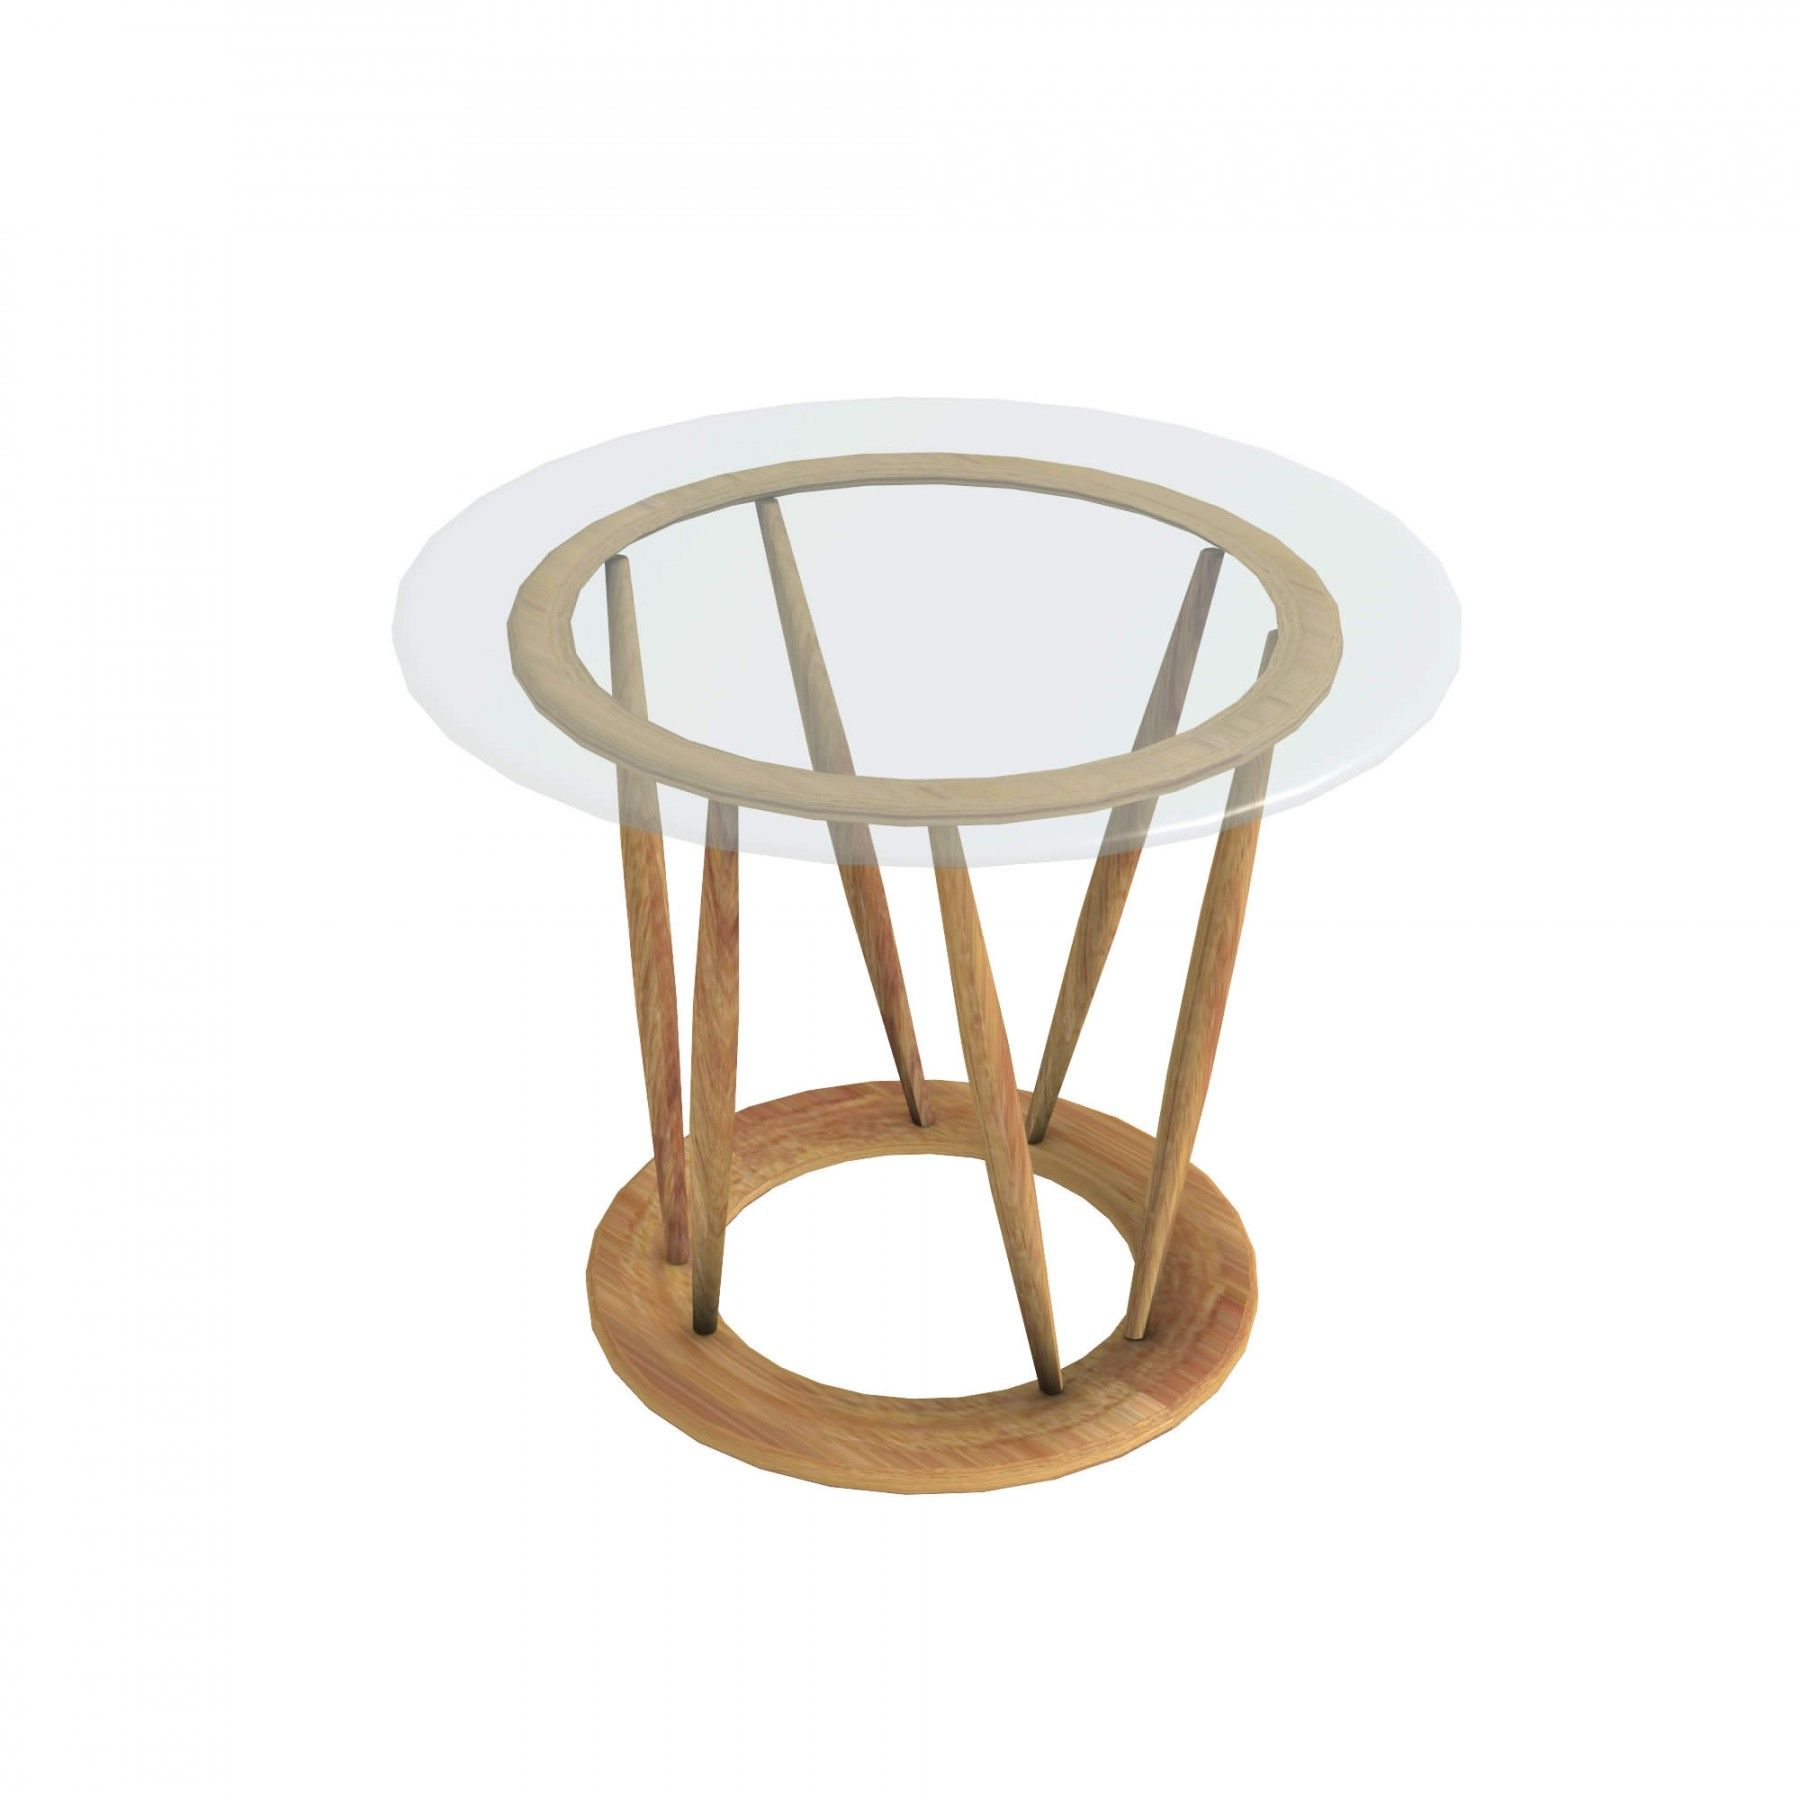 Indobrittan teak round coffee table with glass top, Ø 50 cm Unopiù ...